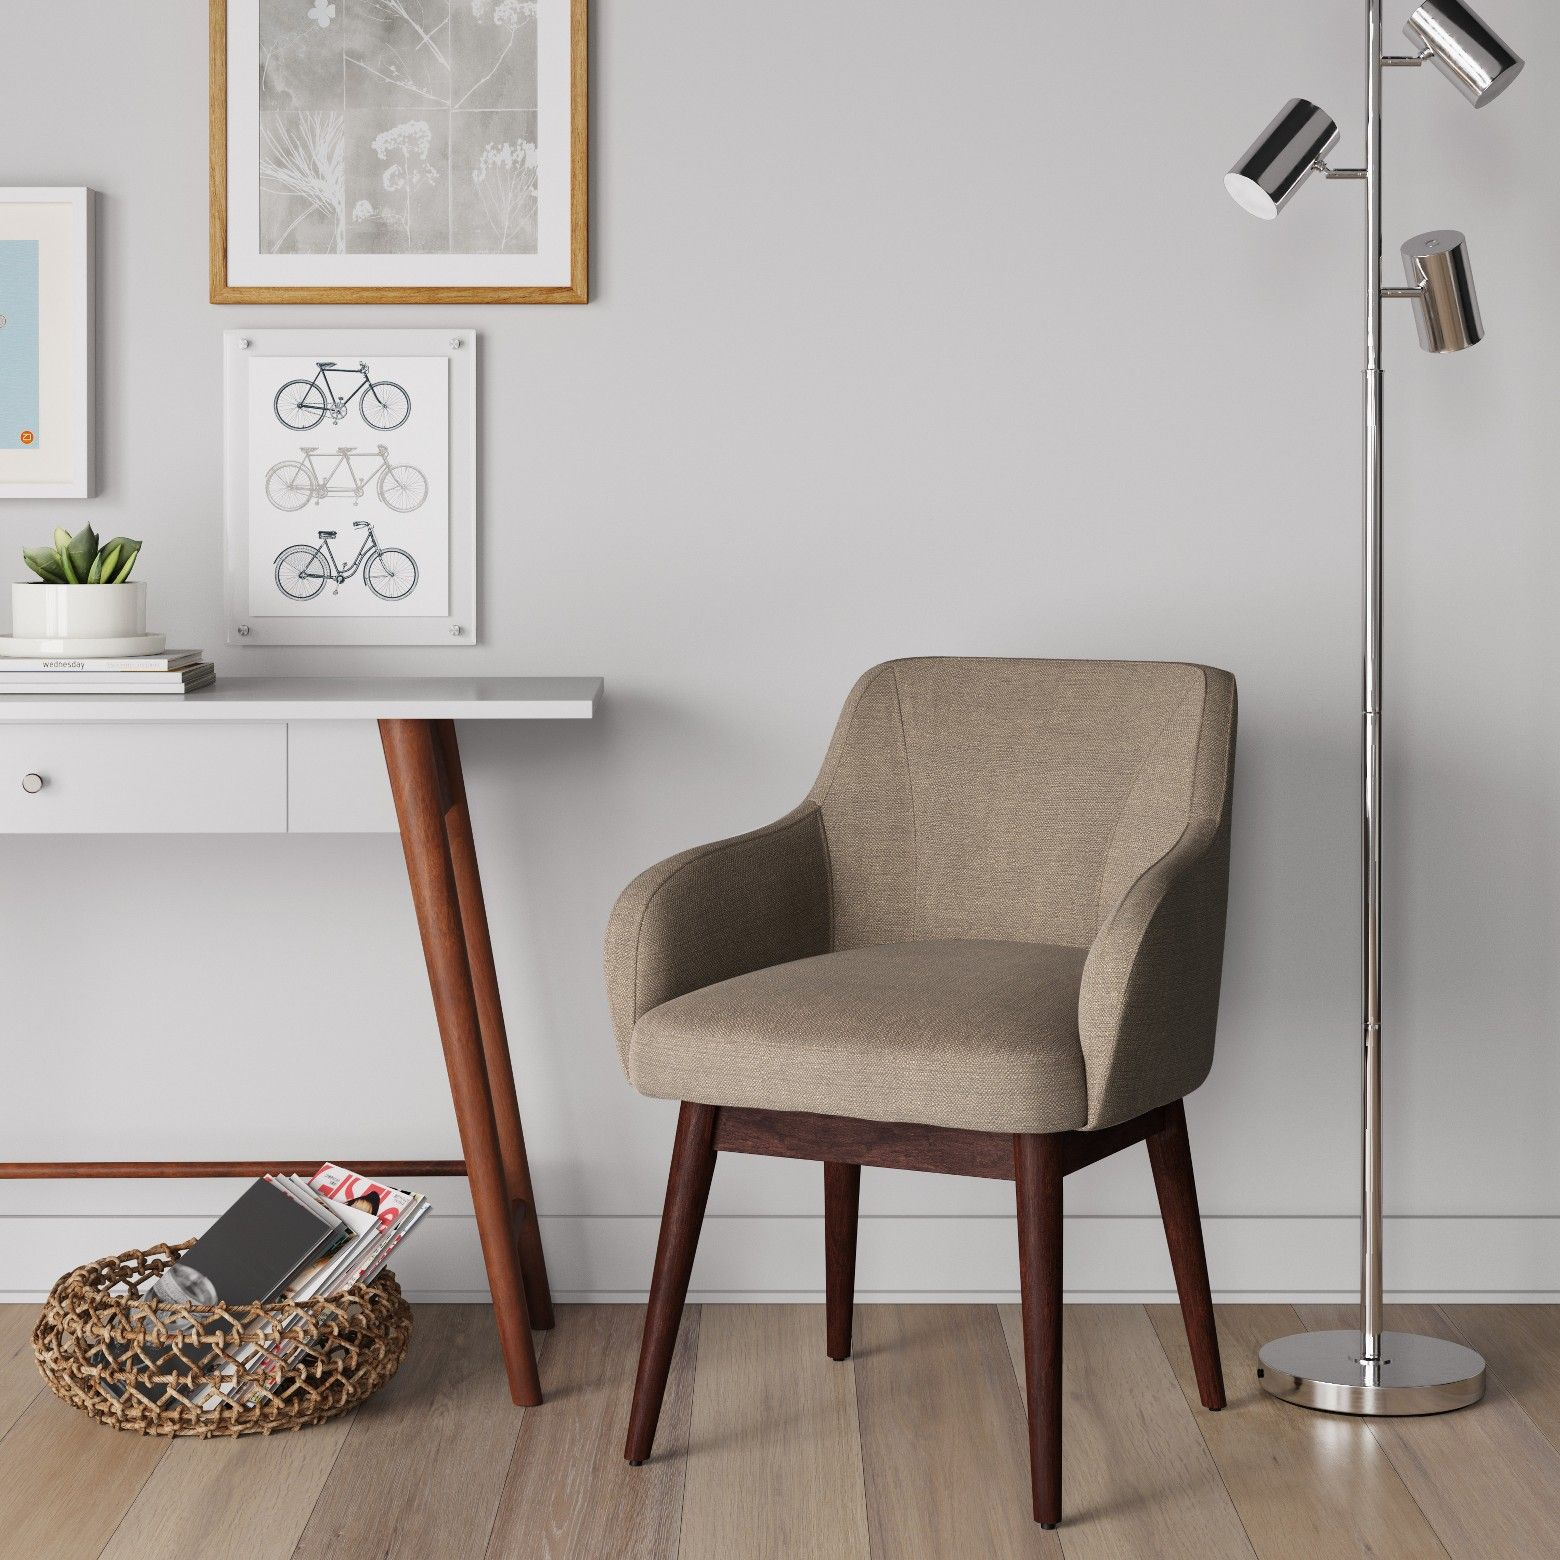 and ghost armchairs of room dining with picture chair home lucite full design living cheap target milan chairs in ikea also wooden furniture size louis comfortable sofa rectangle table